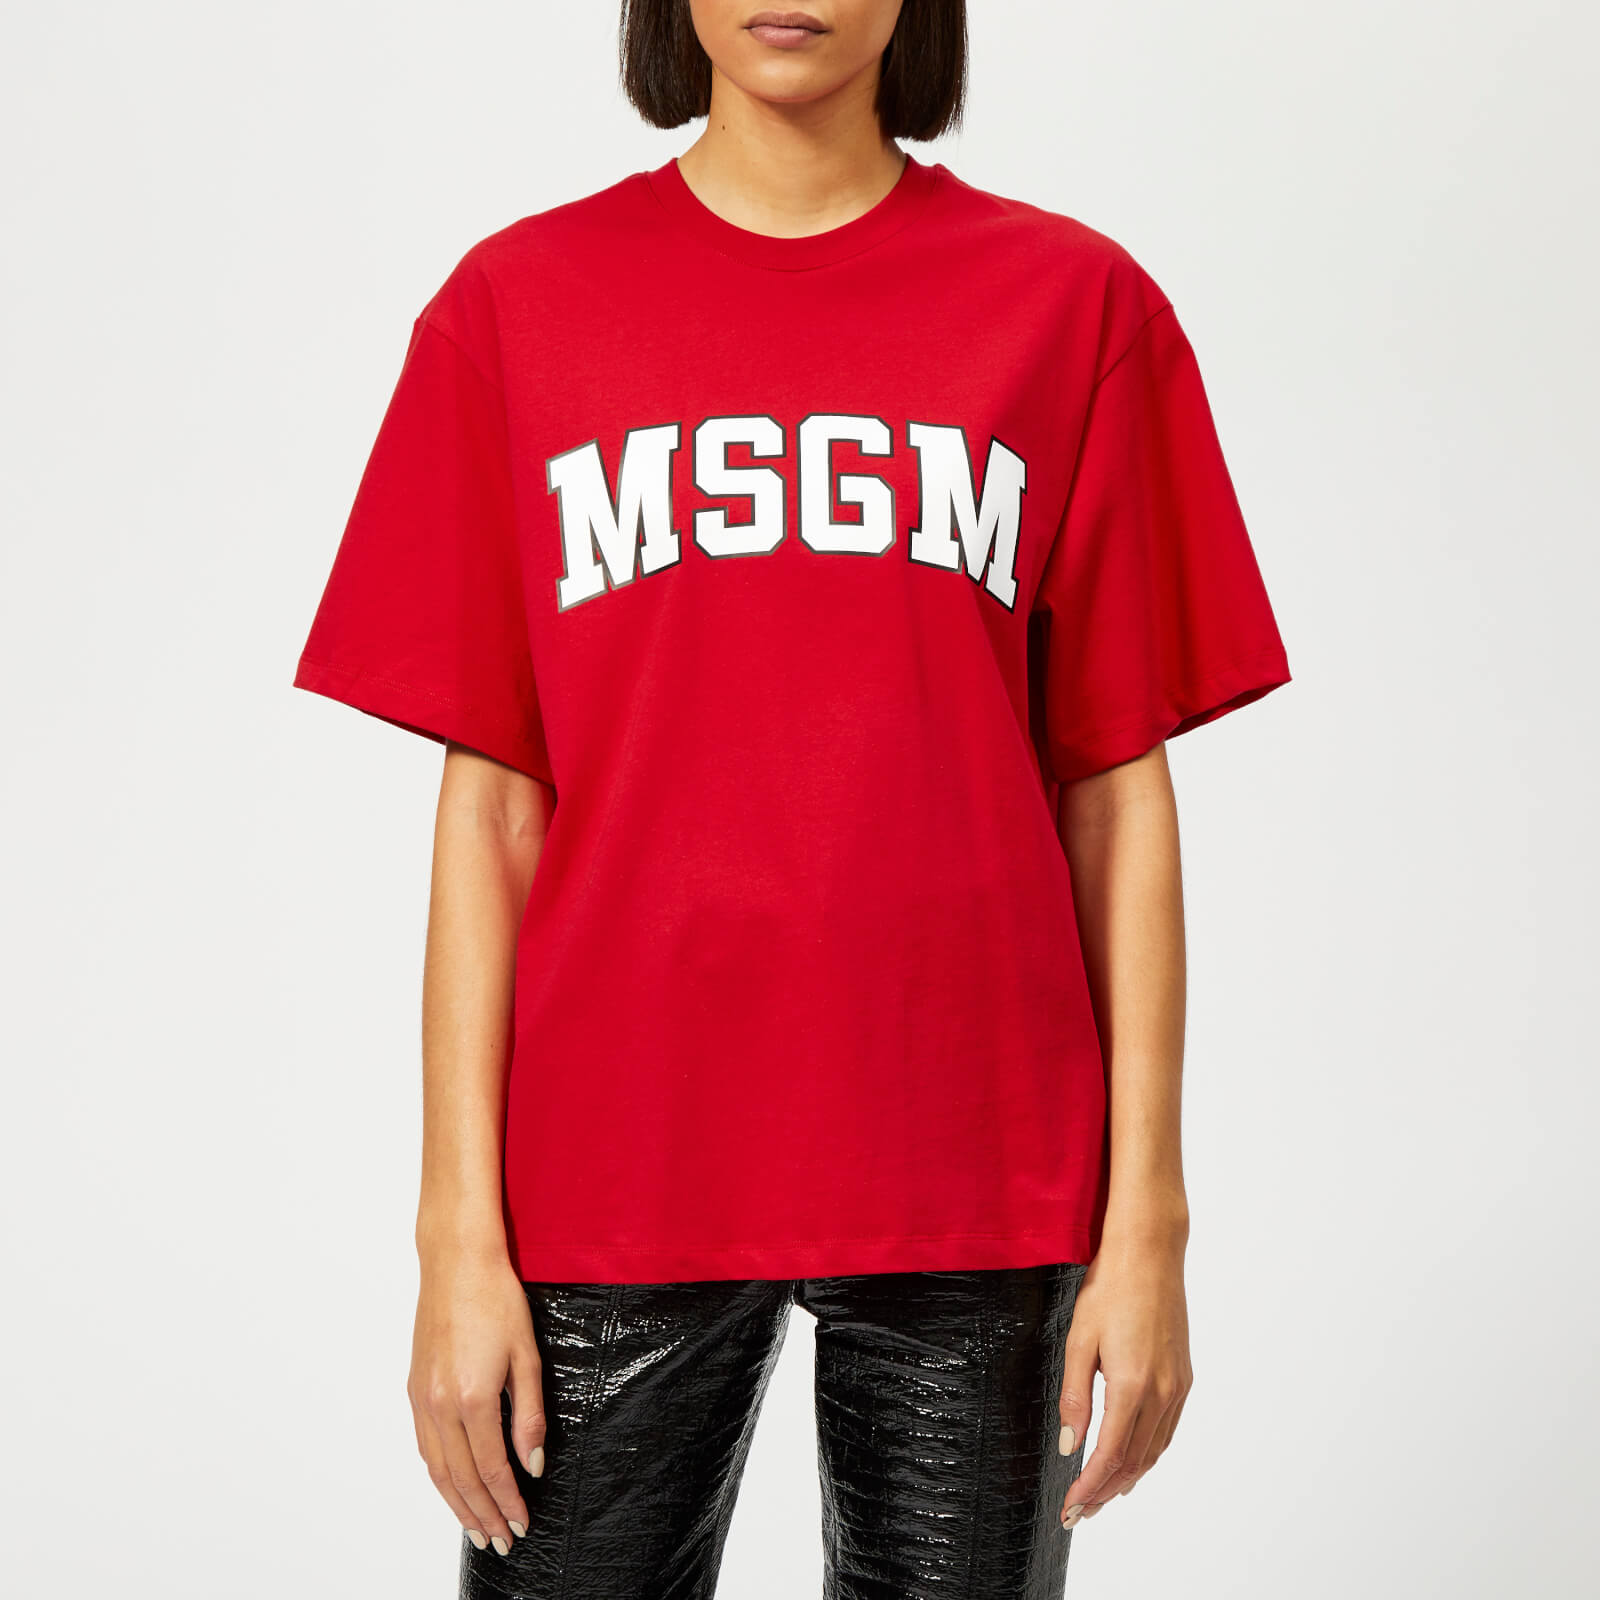 332af64a MSGM Women's College Logo T-Shirt - Red - Free UK Delivery over £50